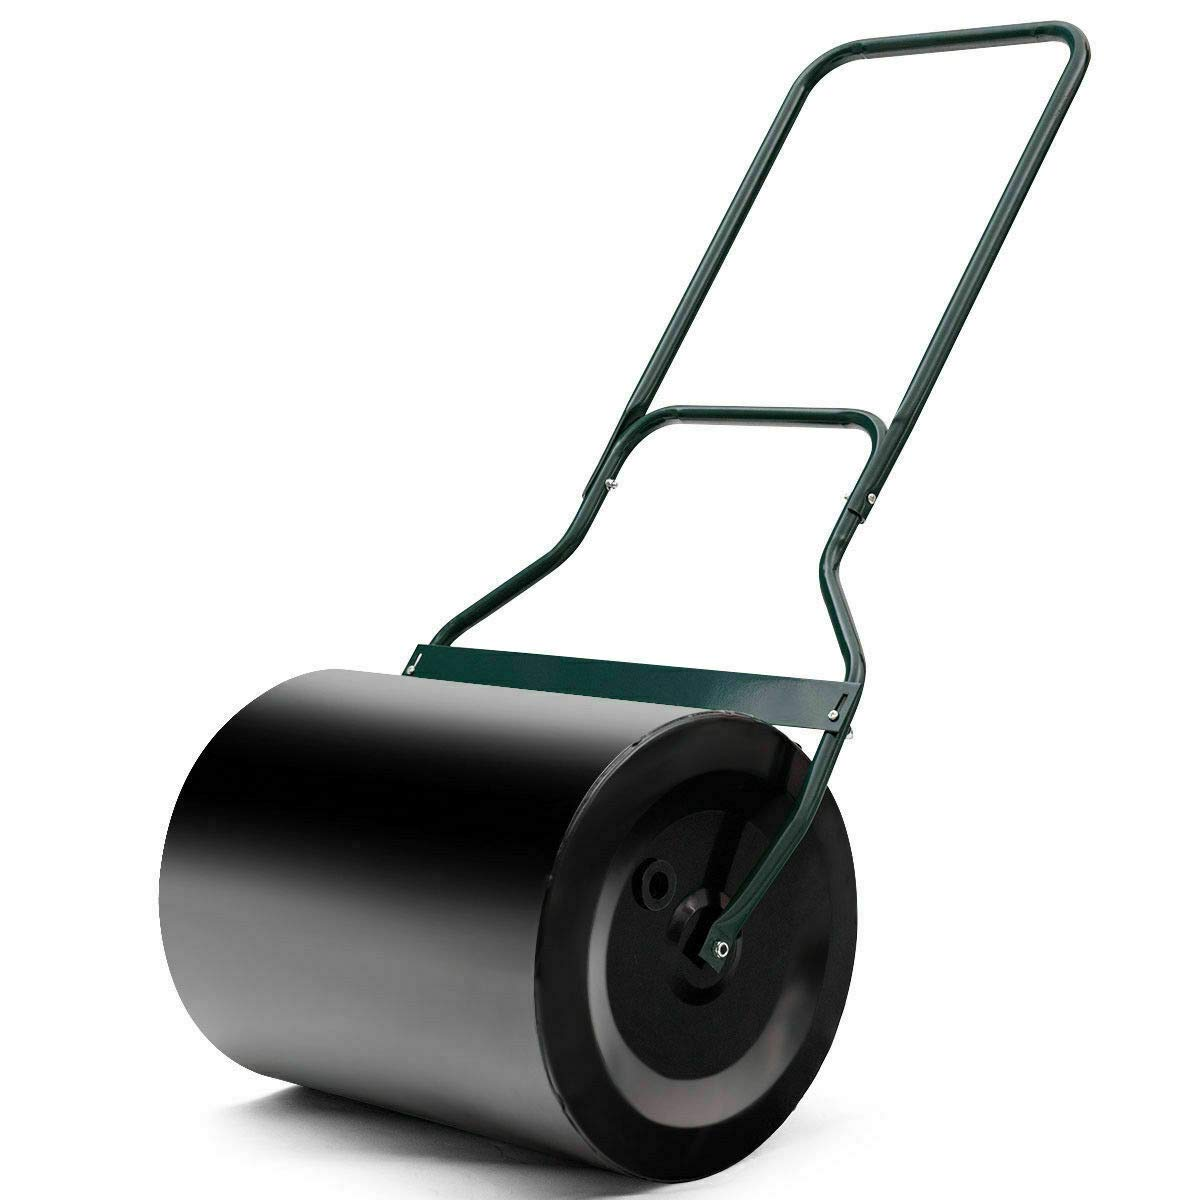 Chanok Lawn Roller Tow Poly Behind Push Mower Heavy Duty Lawn Push Tow Ground Pull Drain Garden 16 x 19.5 Inches by Chanok